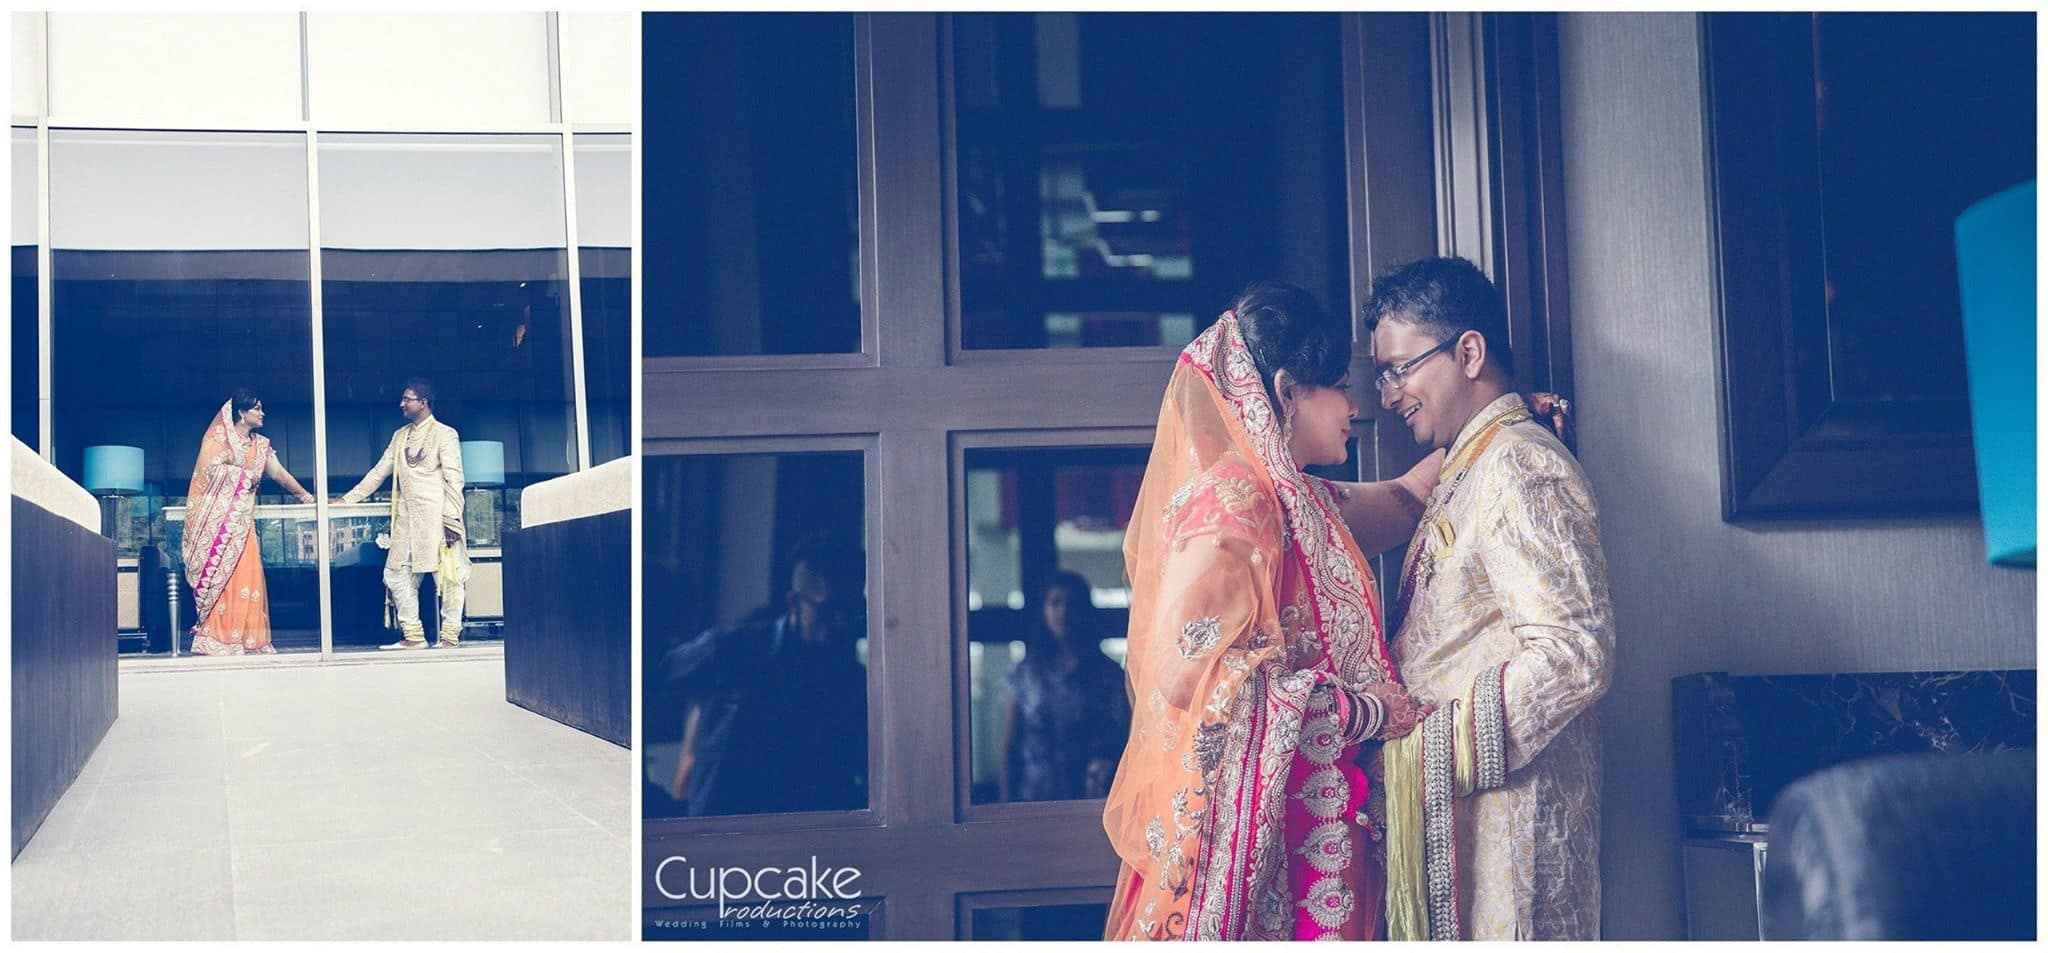 photoshoot of wedding couple: